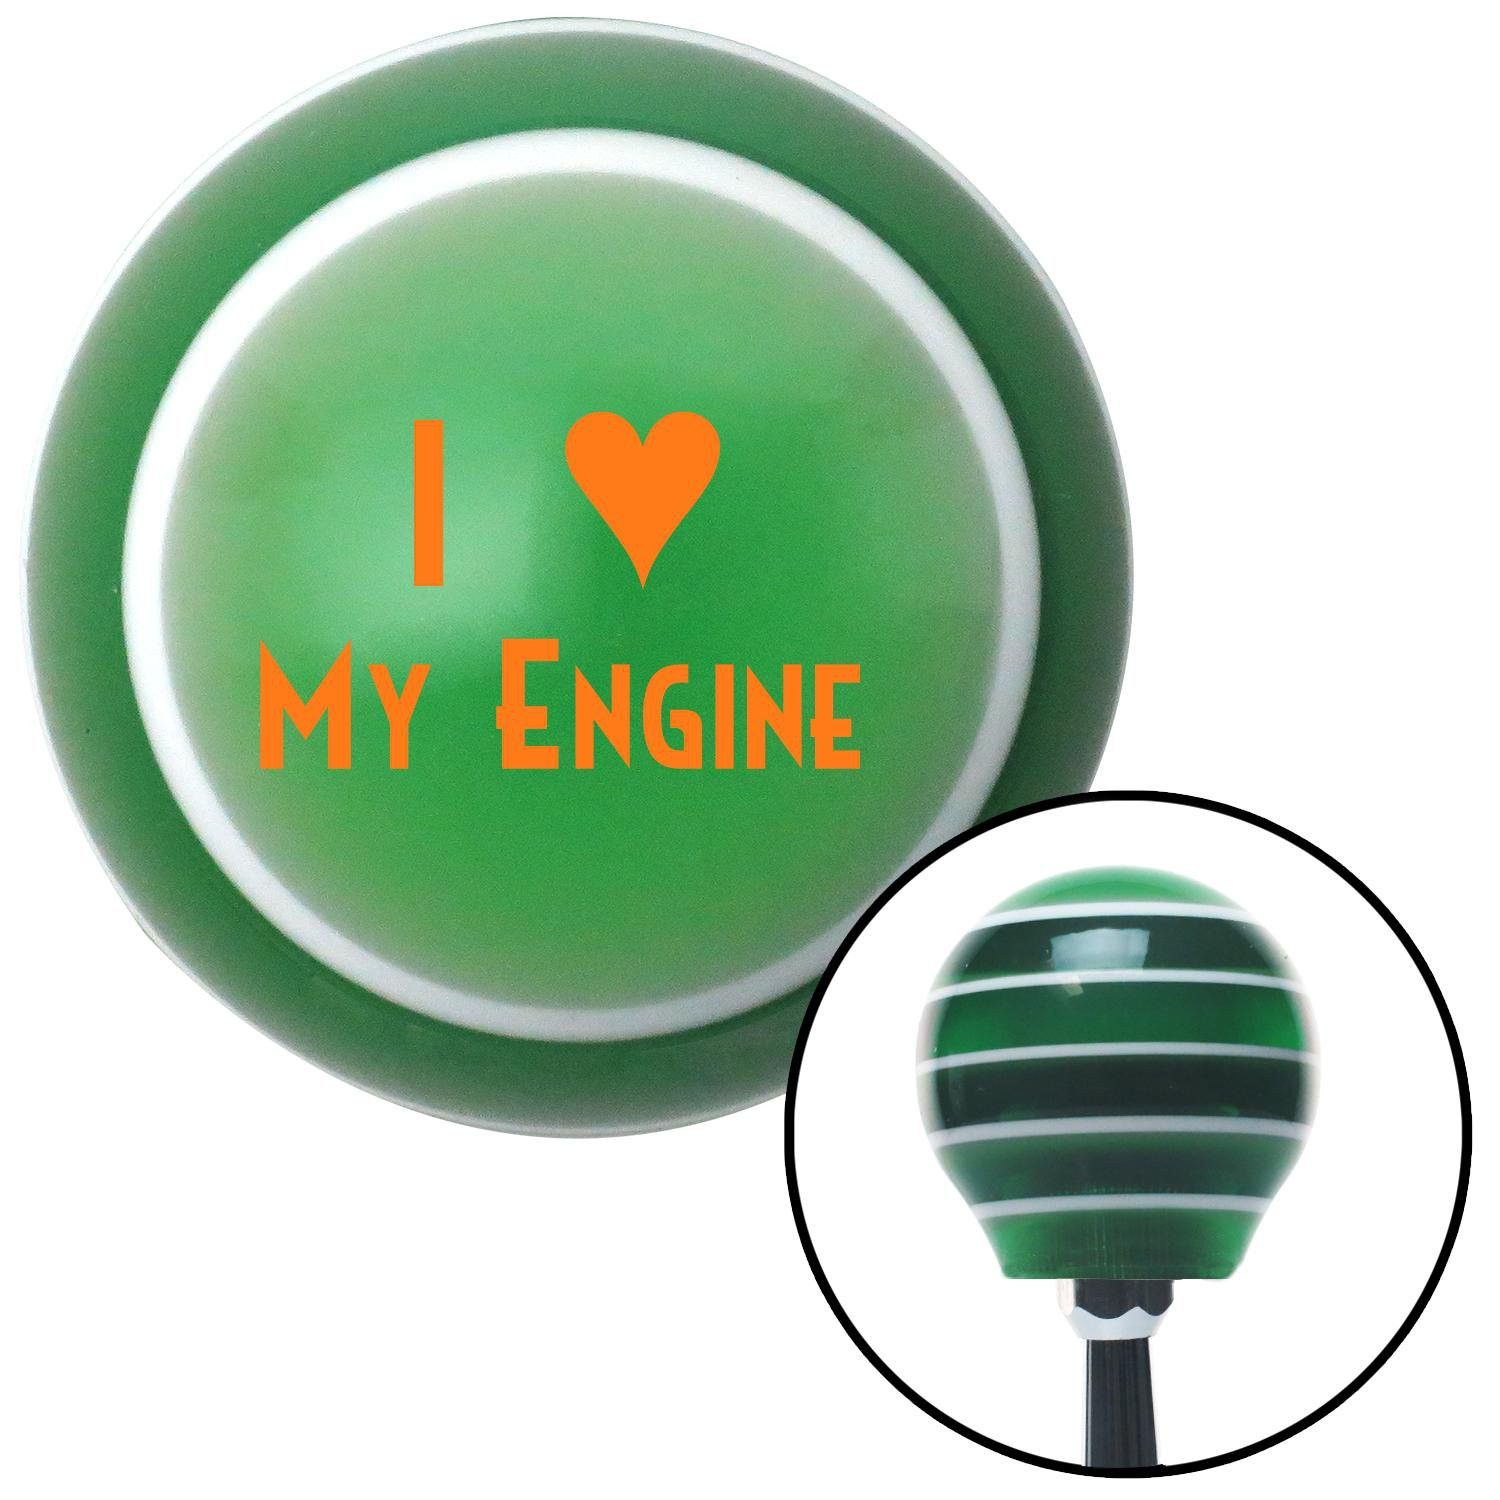 Orange I 3 MY ENGINE Green Stripe Shift Knob with M16 x 15 Insert - Give your interior the ultimate look. American Shifter's Elite(TM) series shift knobs are made from the highest quality components resulting in a superior feel on every shift. Each shift knob is designed and customized in the USA by skilled shift knob artisans who have a trained eye on every detail. American Shifters shift knobs offers an exclusive aluminum threaded insert designed to be screwed onto your shift arm. You…